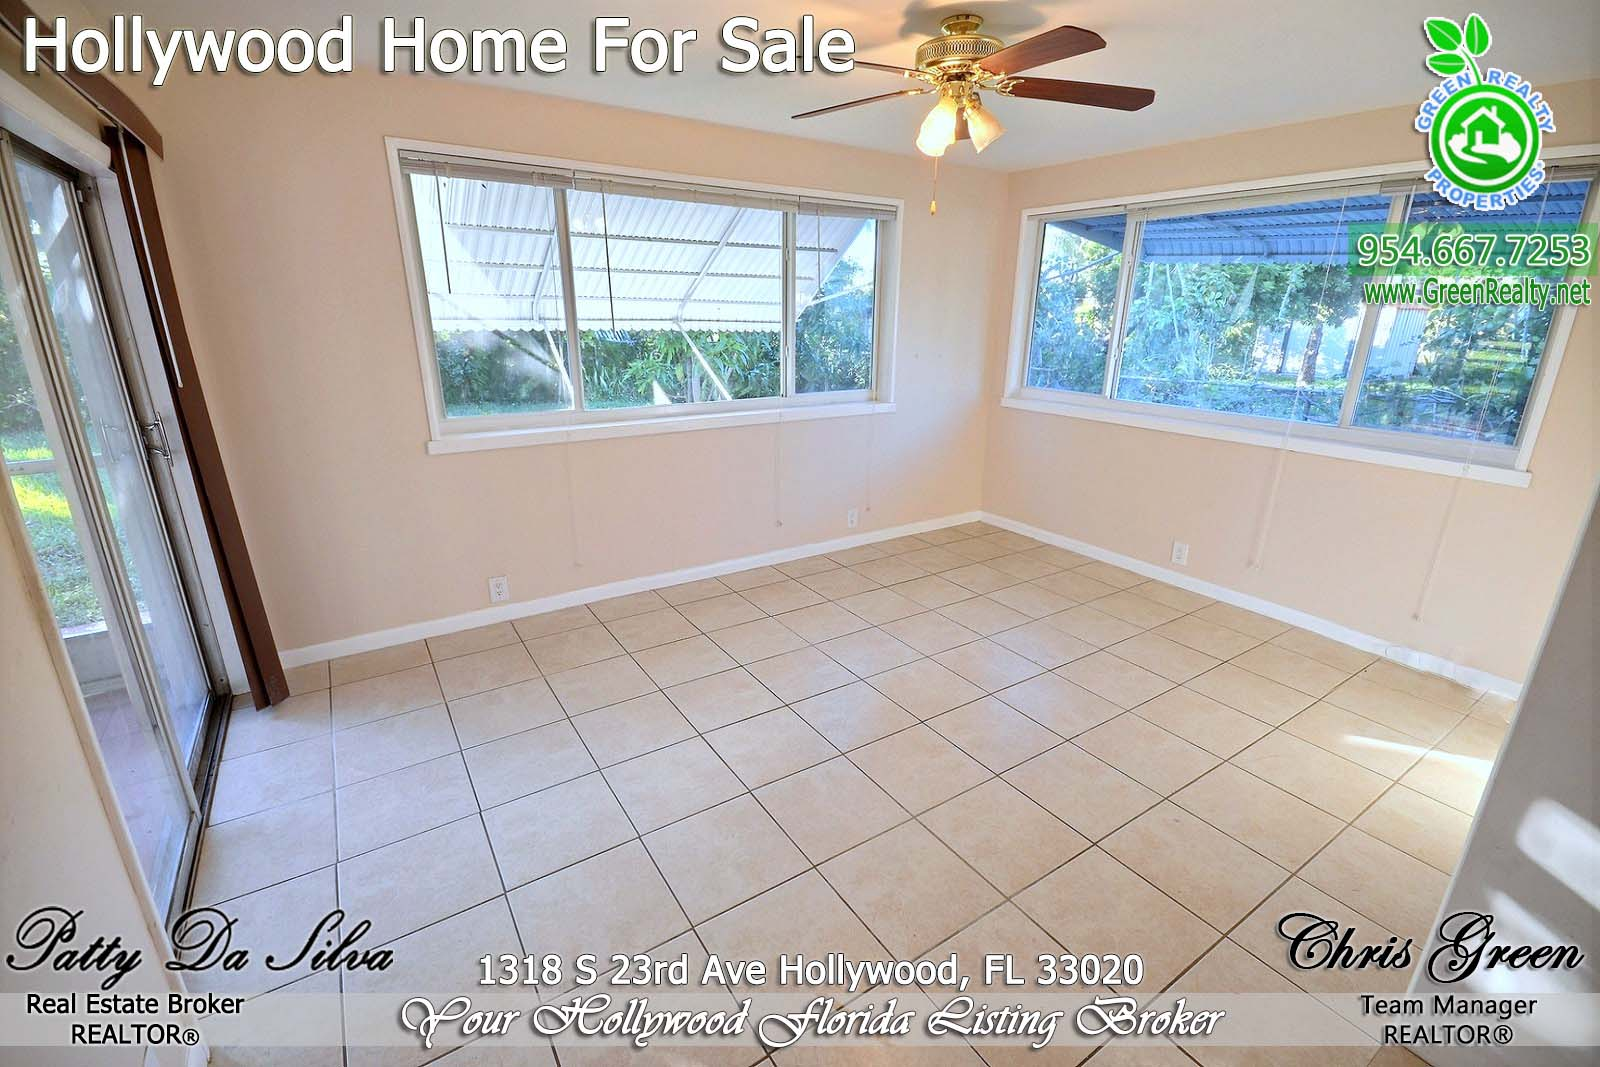 10 Hollywood Florida Homes For Sale (21)